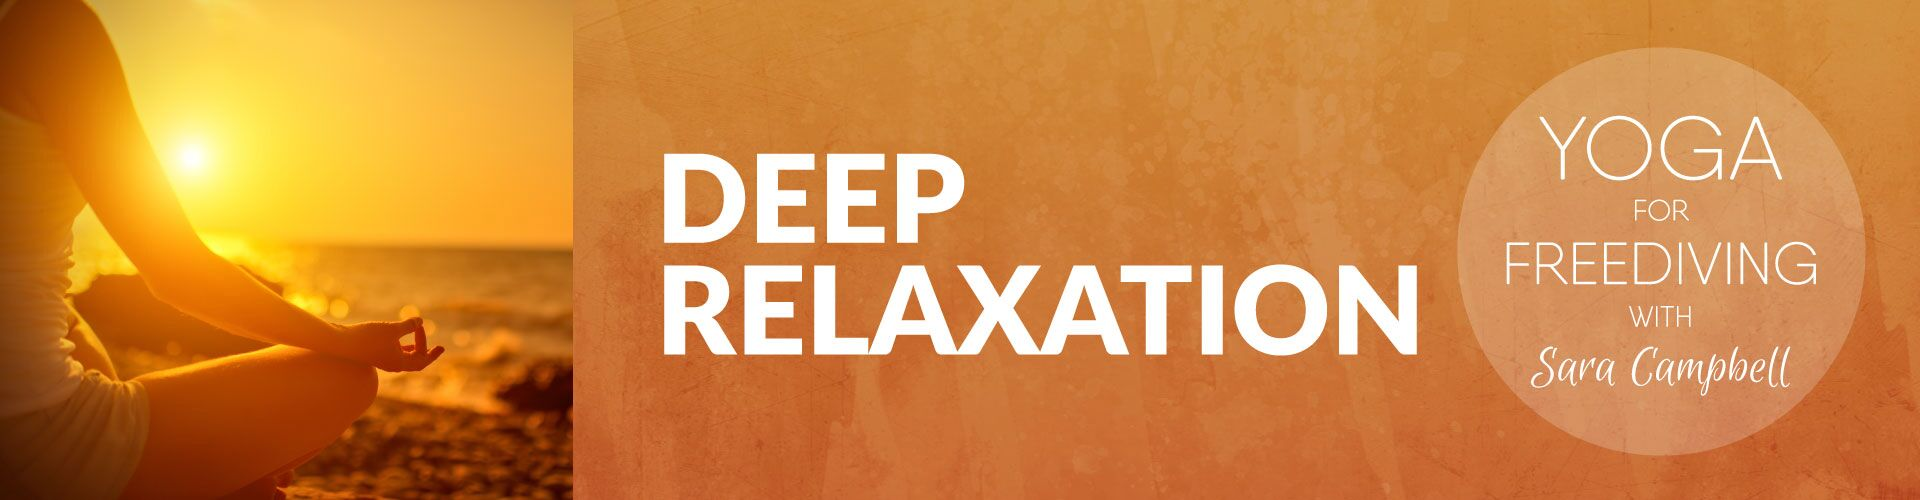 Deep relaxation with Sara Campbell - Yoga for Freediving